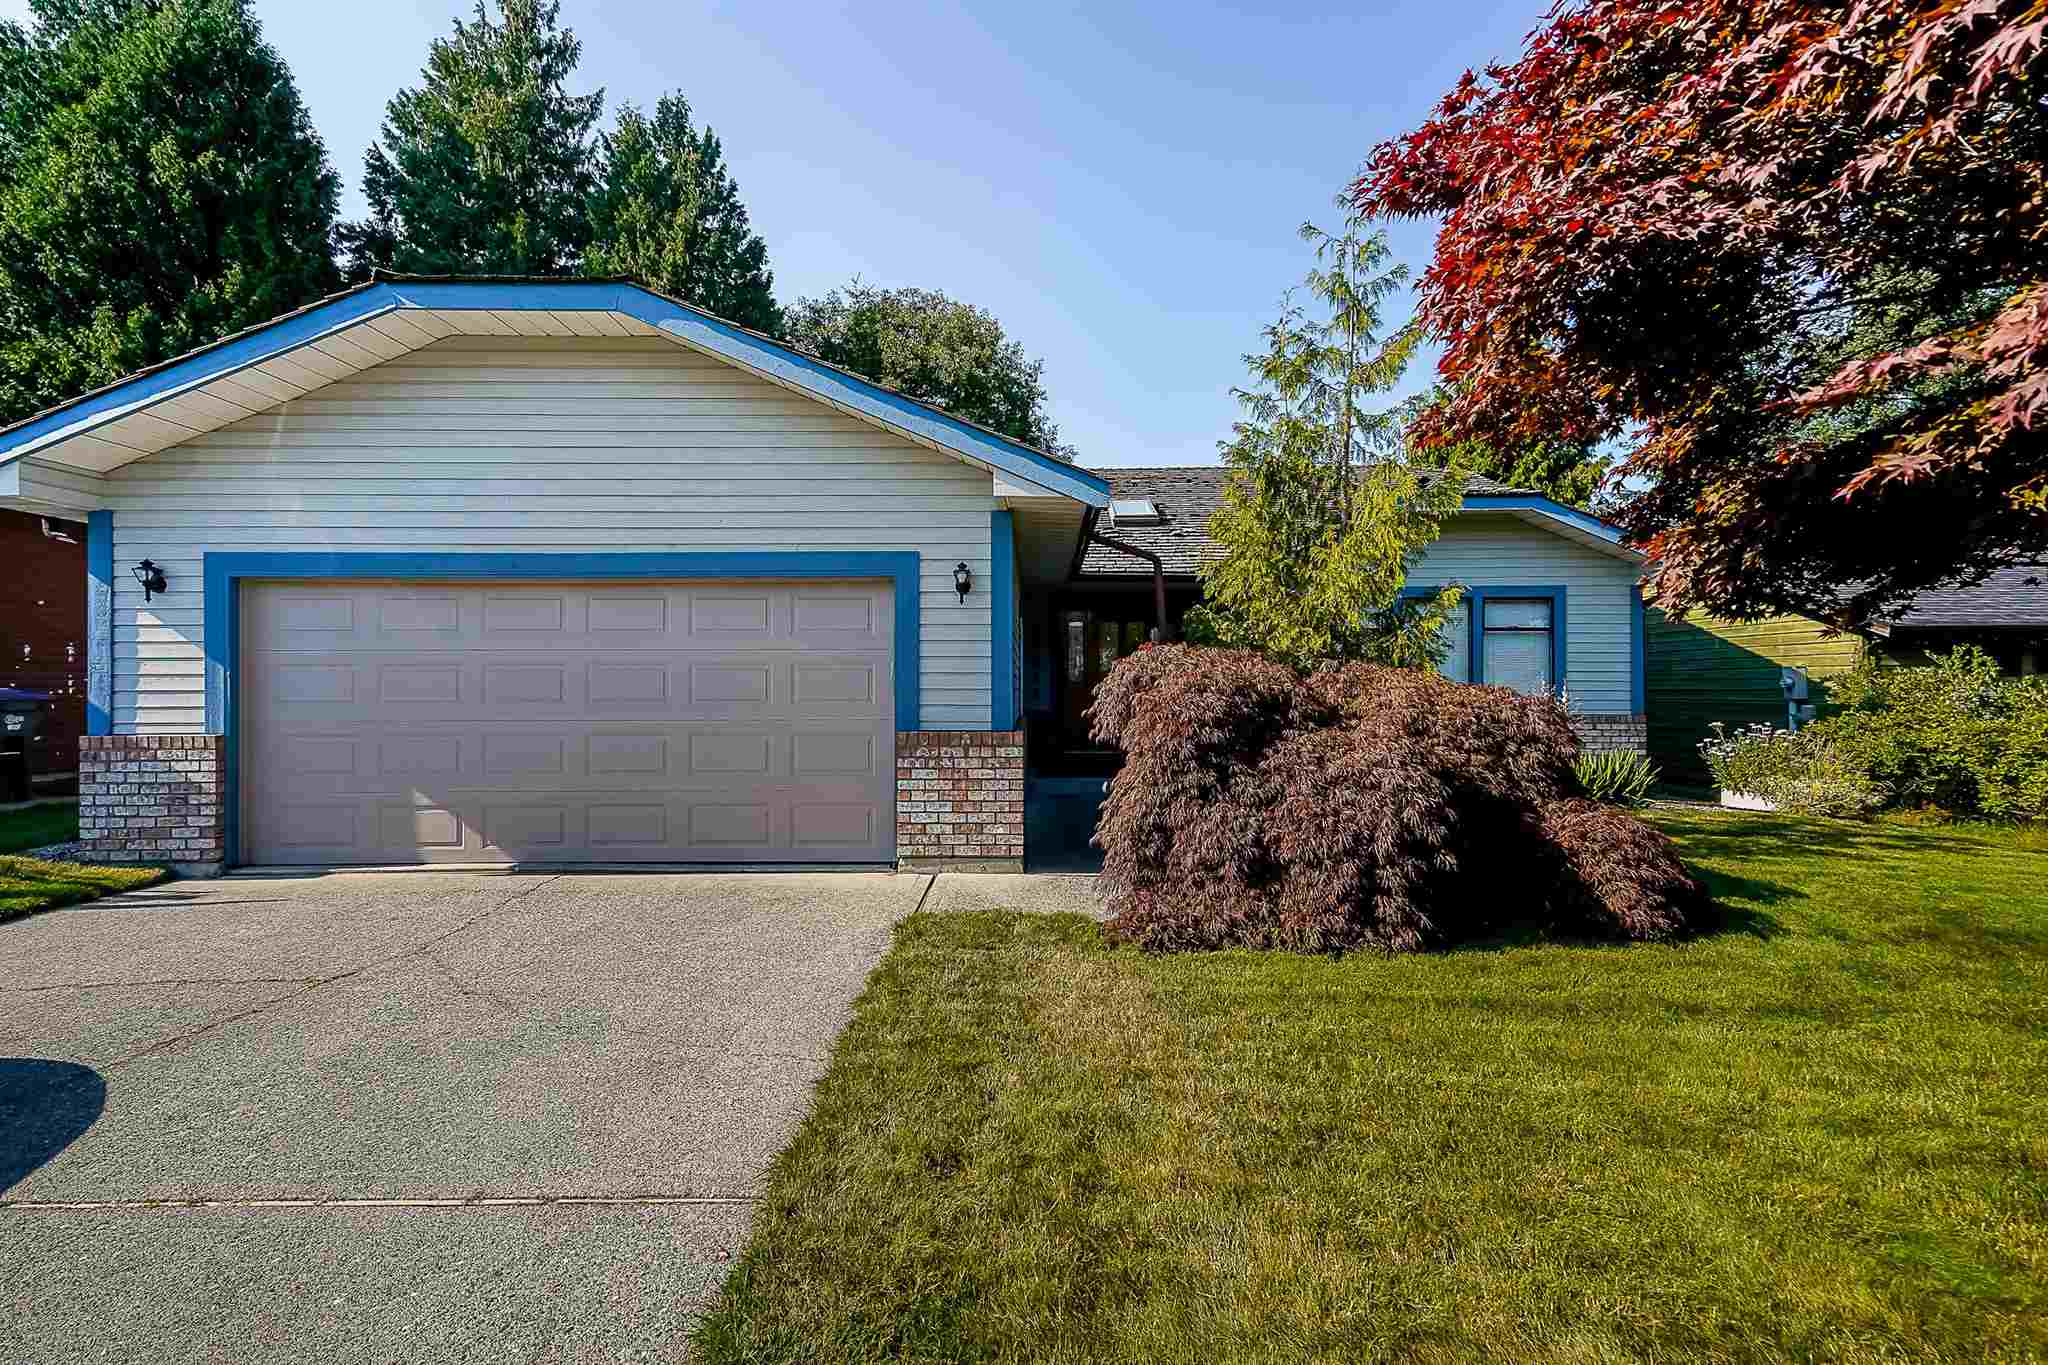 15671 97 AVENUE - Guildford House/Single Family for sale, 3 Bedrooms (R2601387)